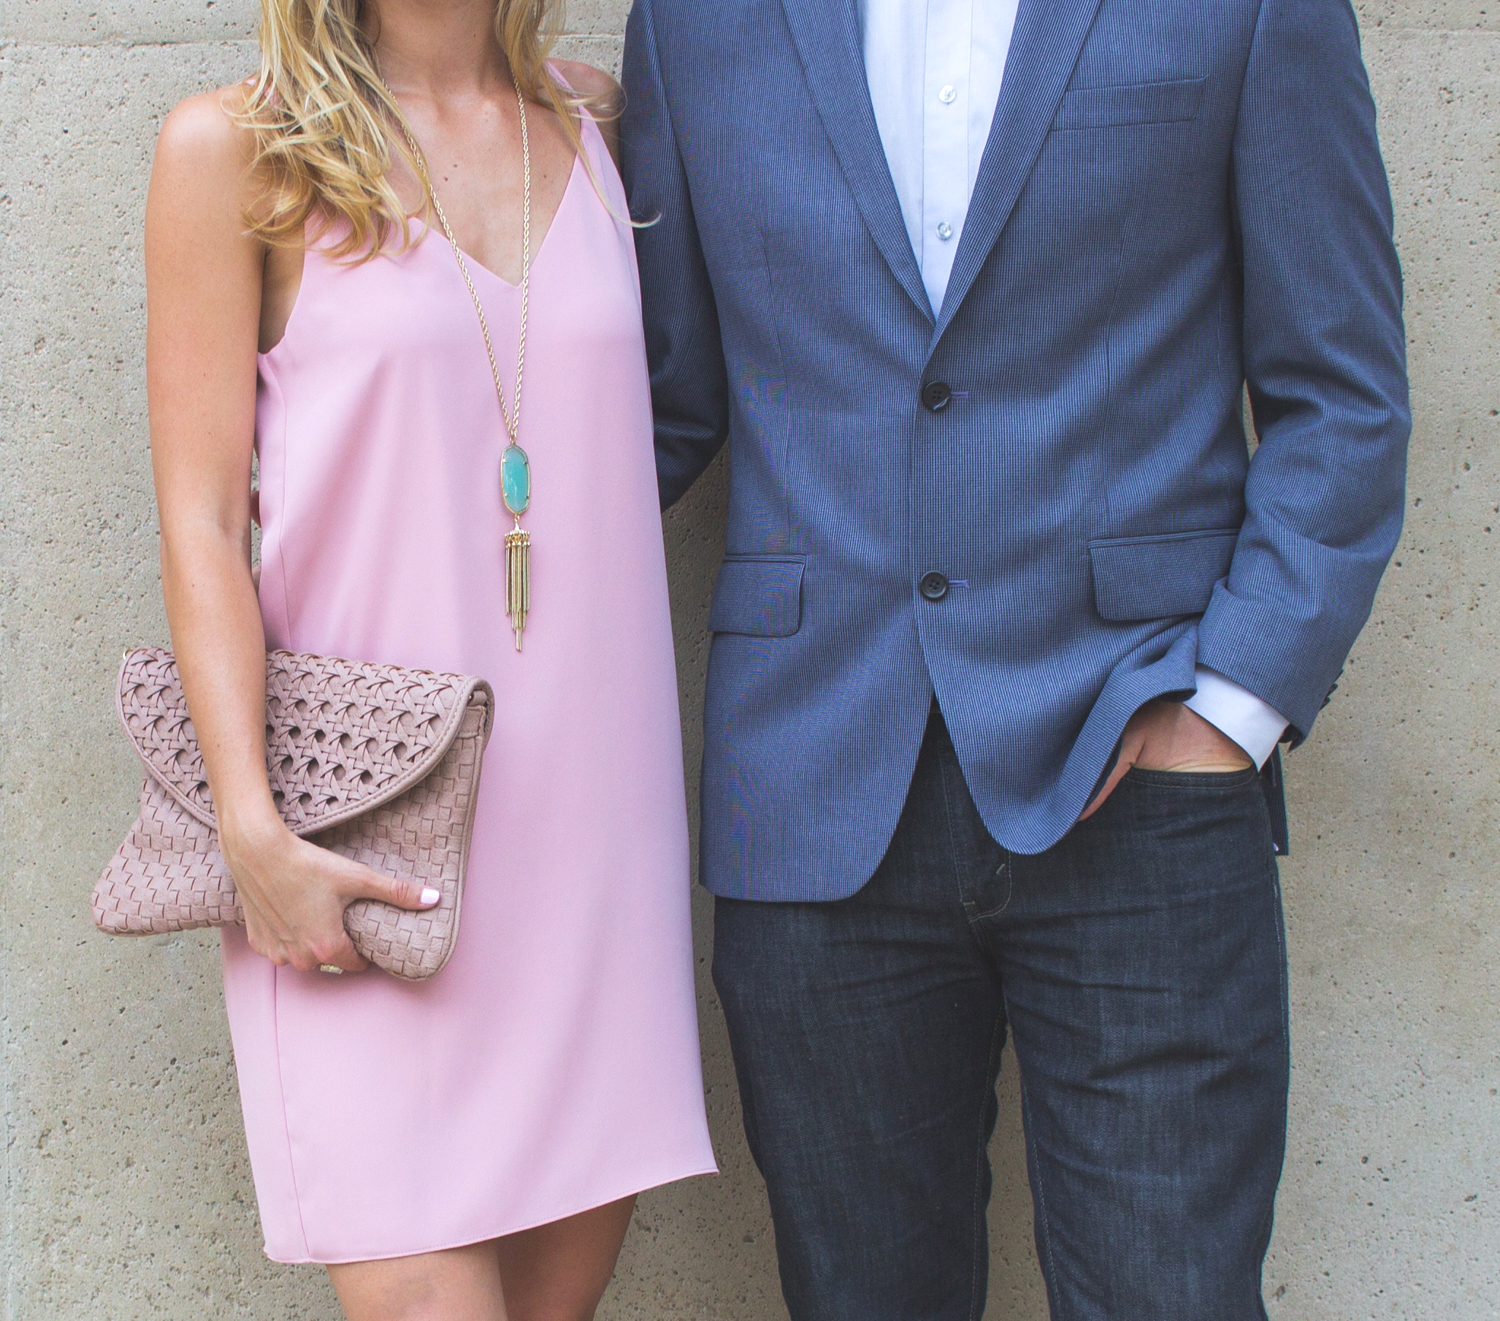 livvyland-blog-olivia-watson-date-night-summer-austin-texas-outfit-inspiration-topshop-blush-pink-slip-dress-nordstrom-mens-suit-fashion-blogger-10